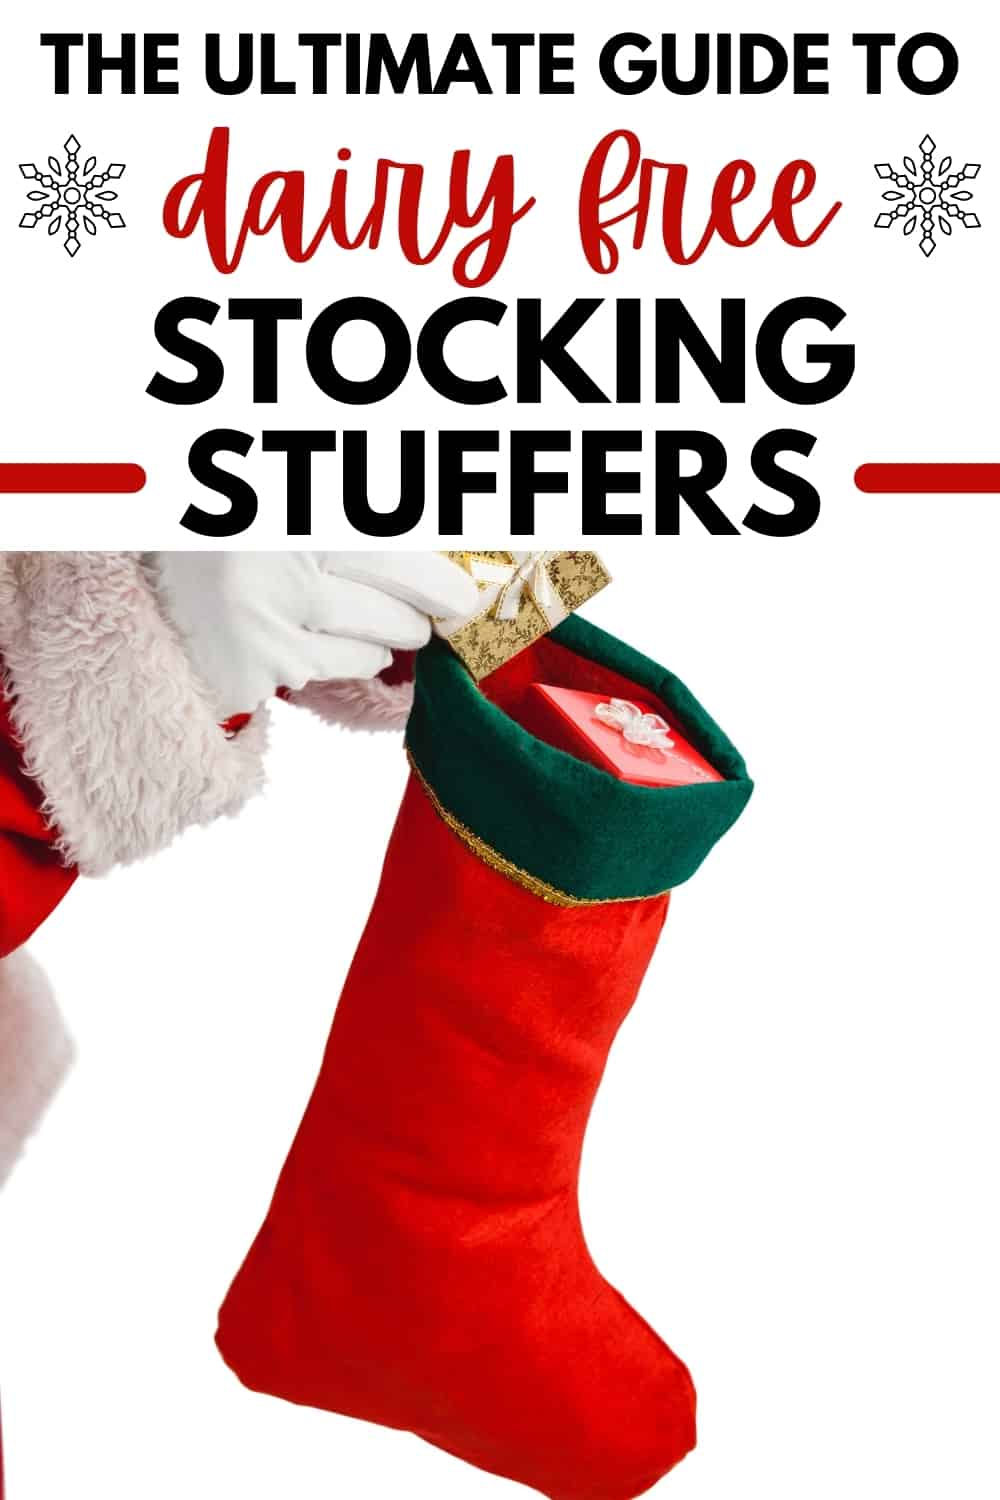 Santa's hand putting a dairy free stocking stuffer into a child's stocking